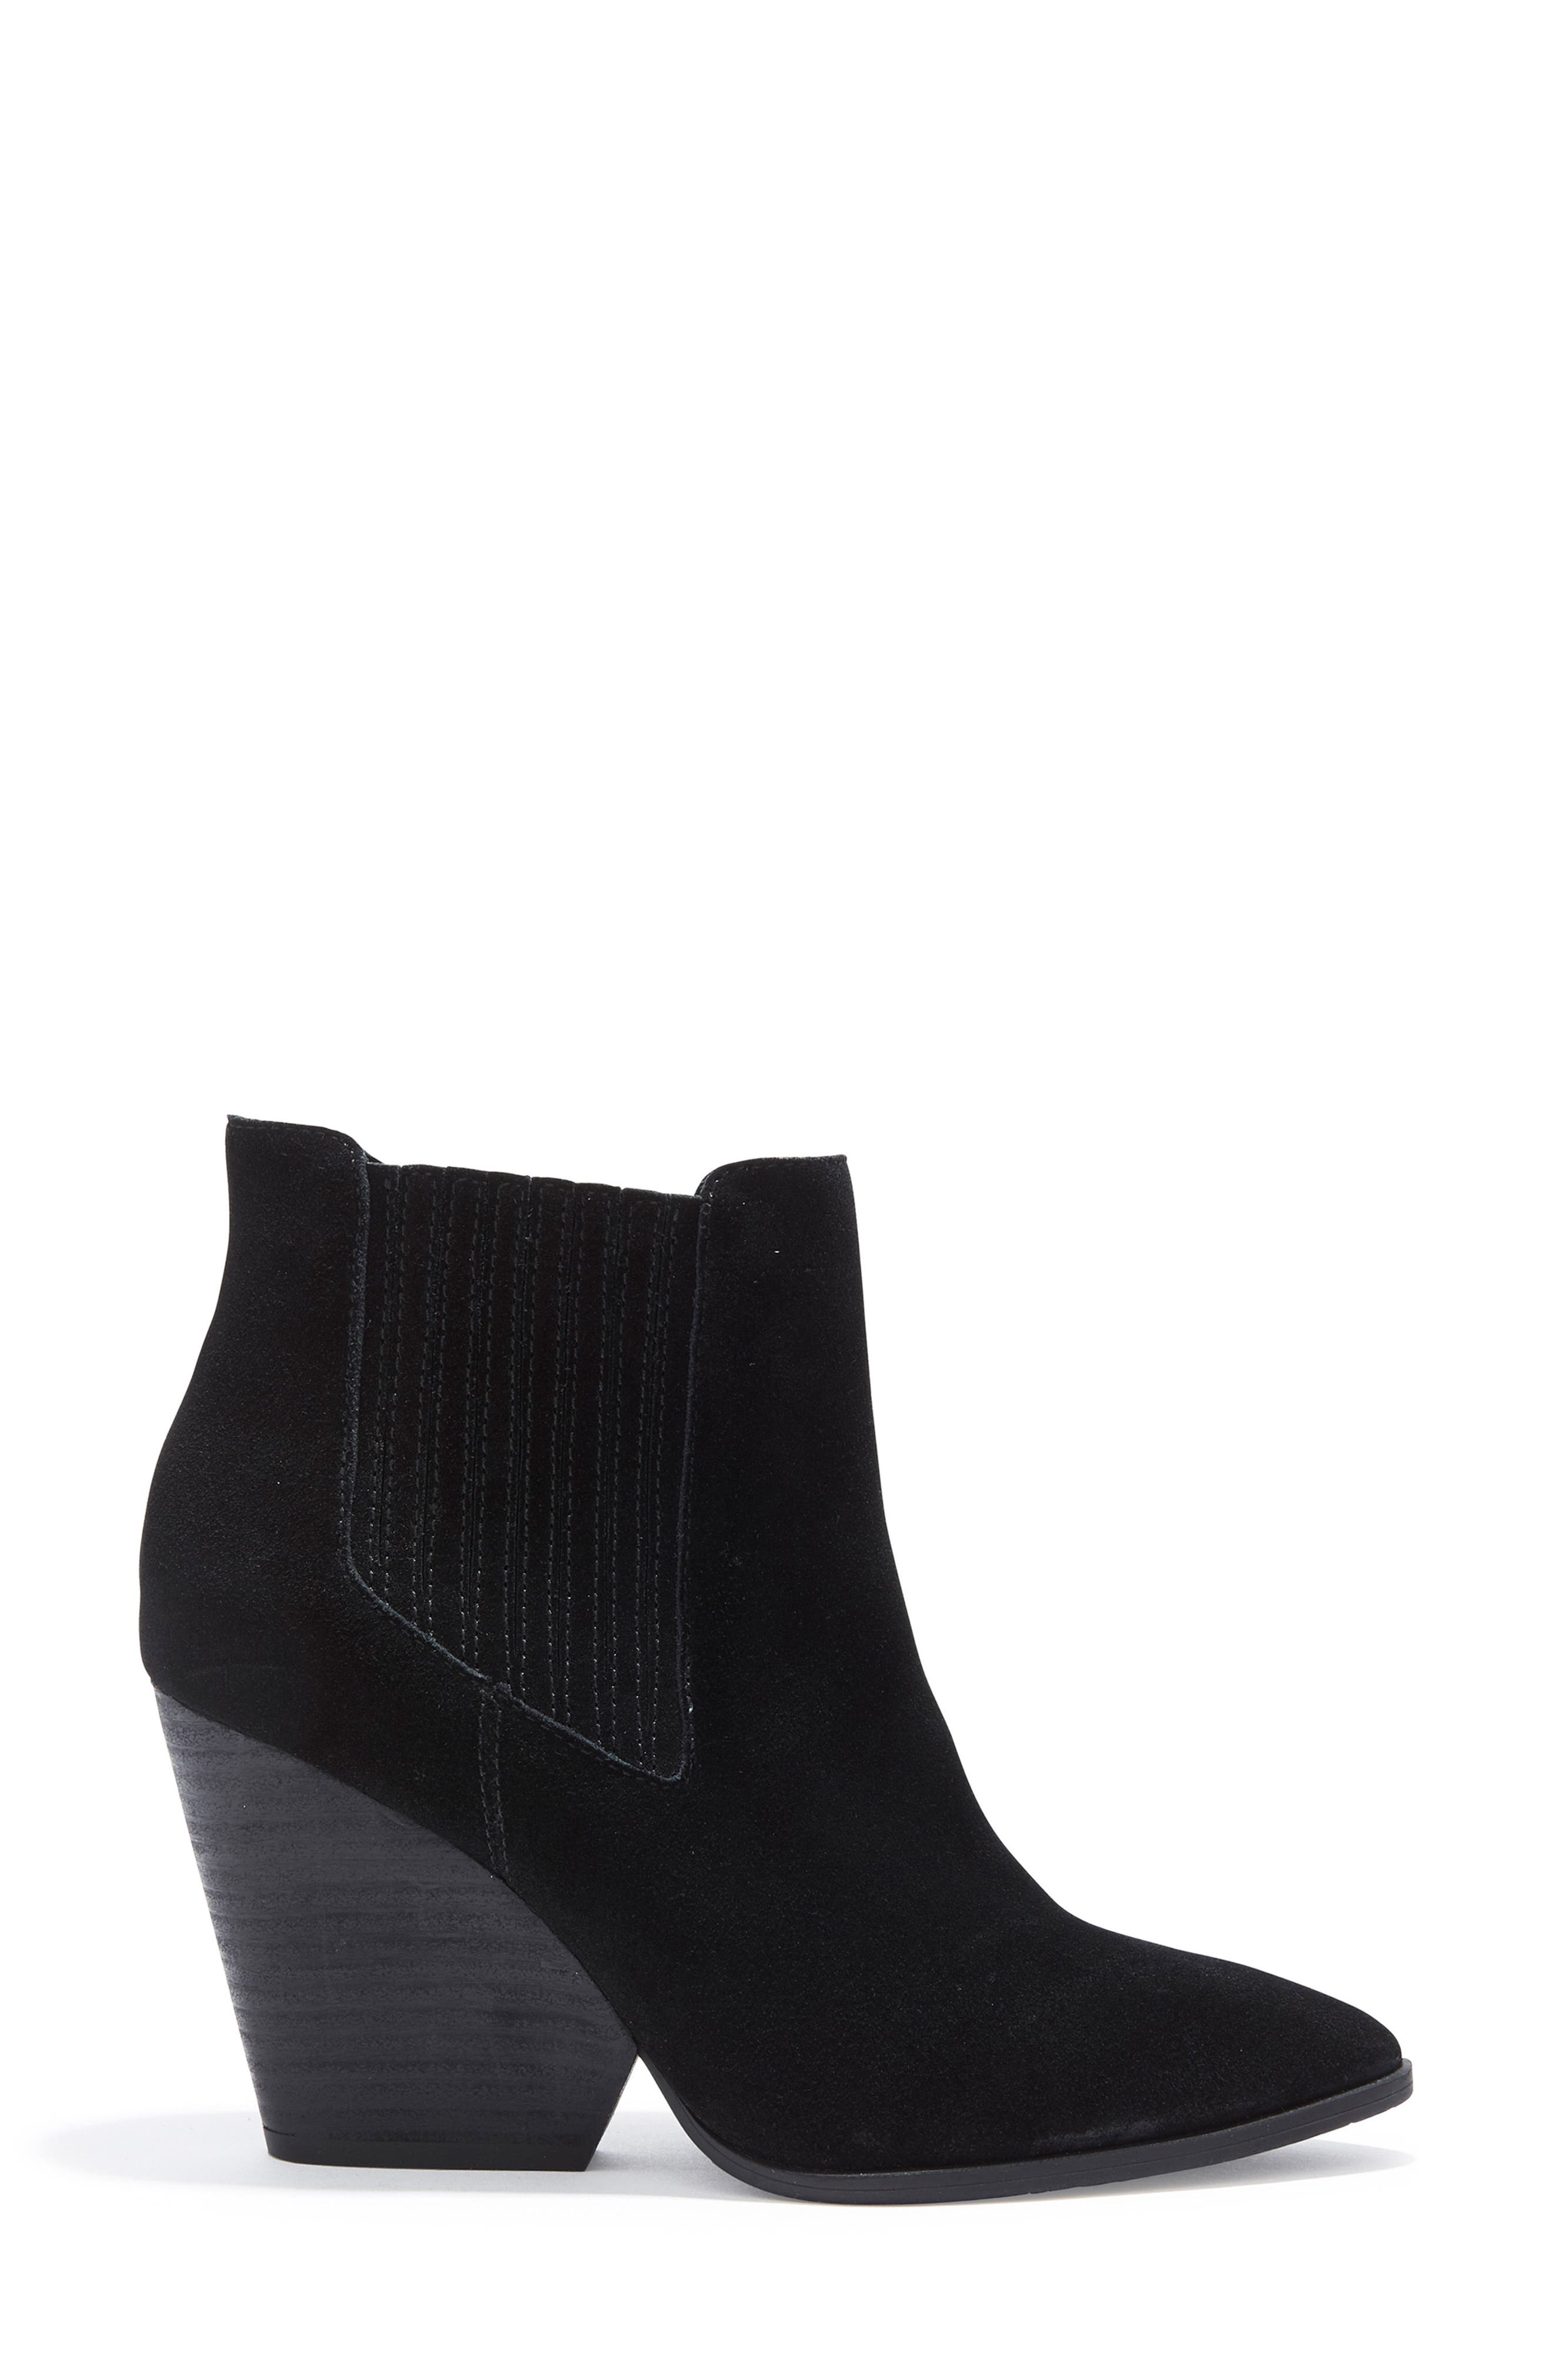 ADAM TUCKER BY ME TOO,                             Mason Wedge Bootie,                             Alternate thumbnail 3, color,                             014